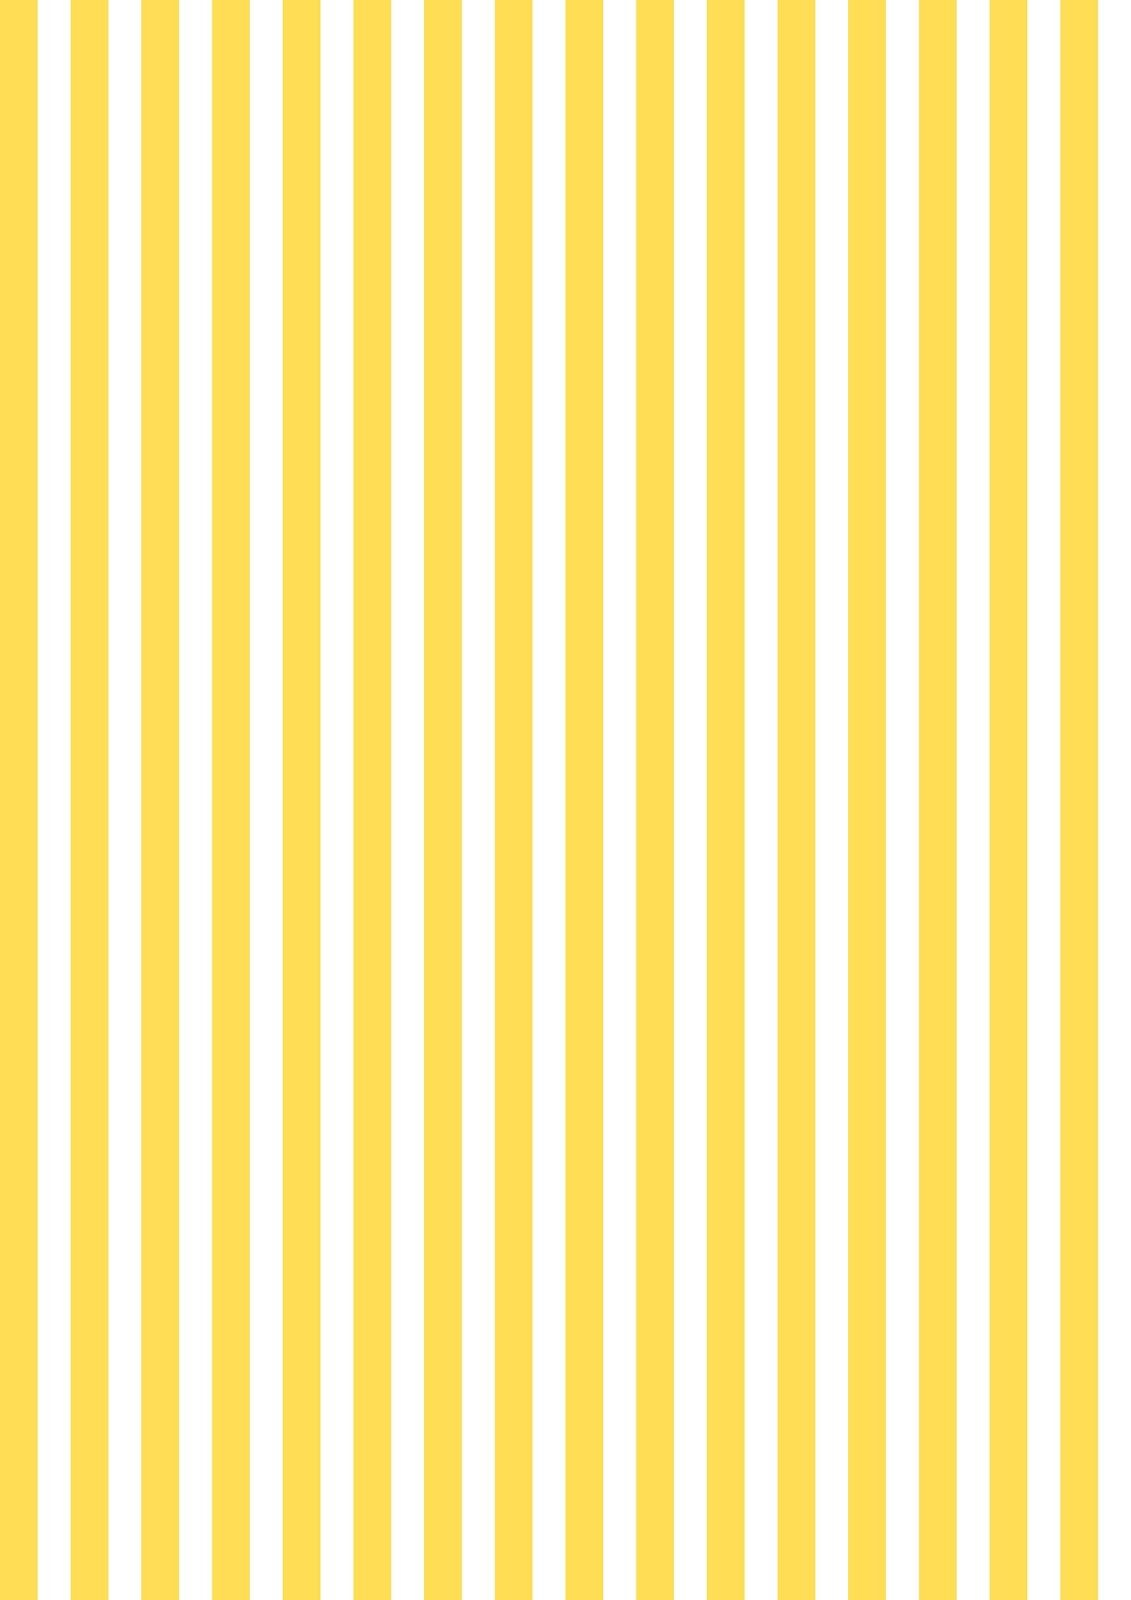 Free Digital Striped Scrapbooking Paper - Ausdruckbares - Free Printable Wallpaper Patterns